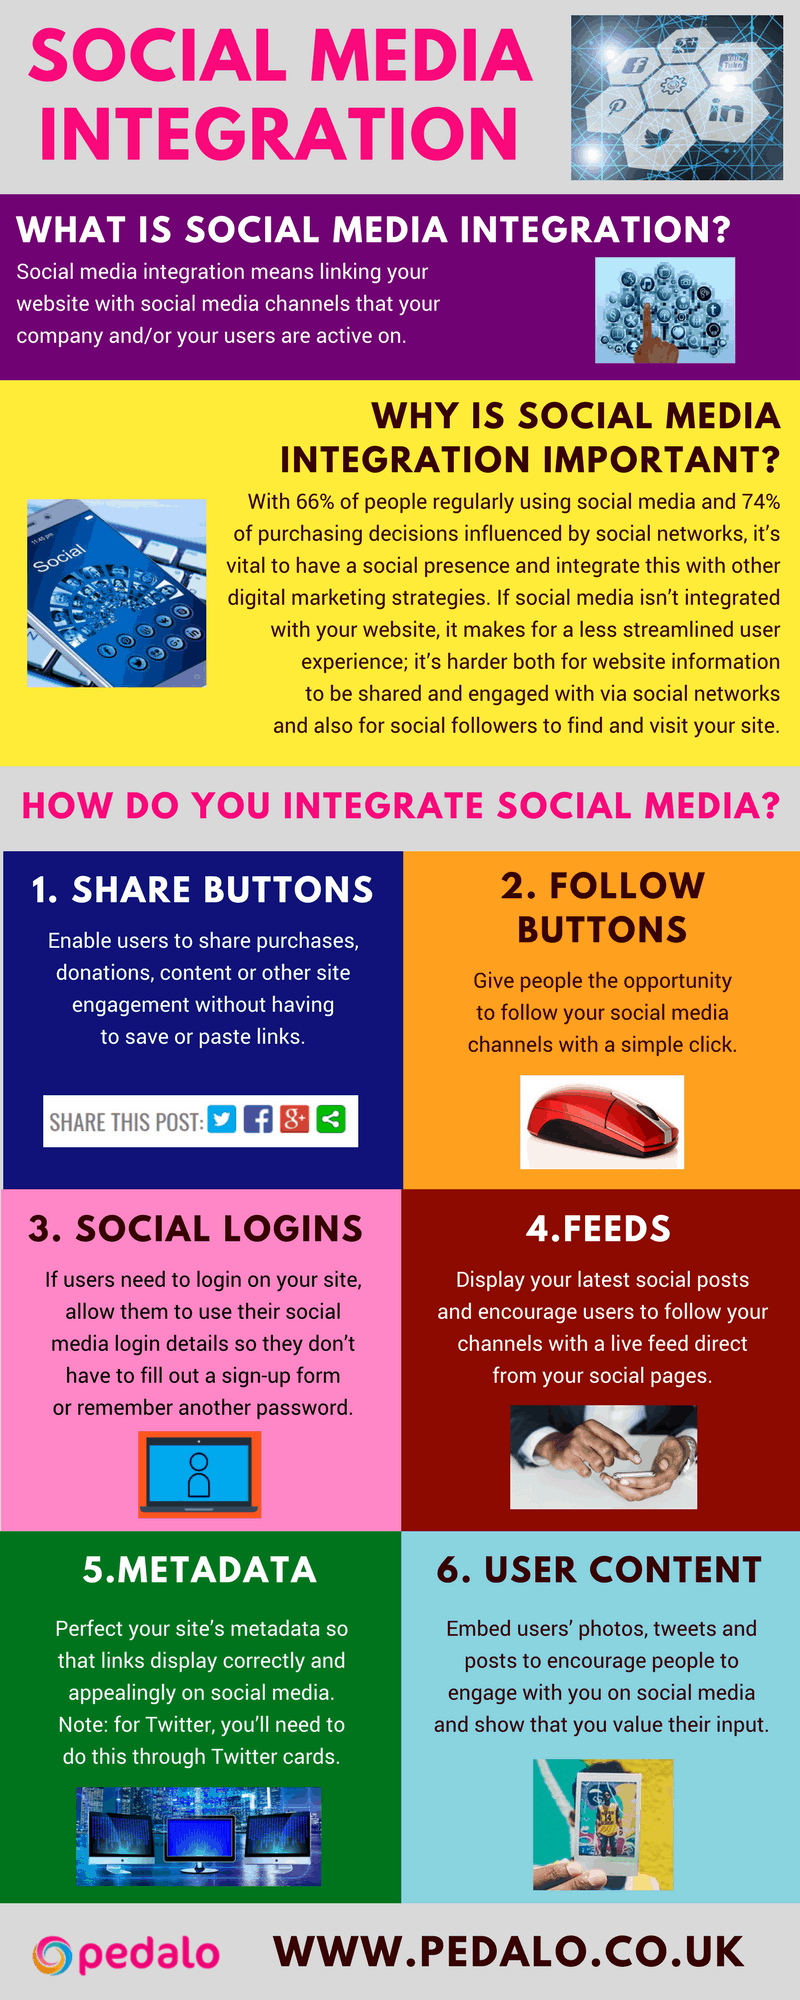 Learn more about the basics of social media integration in this great infographic.